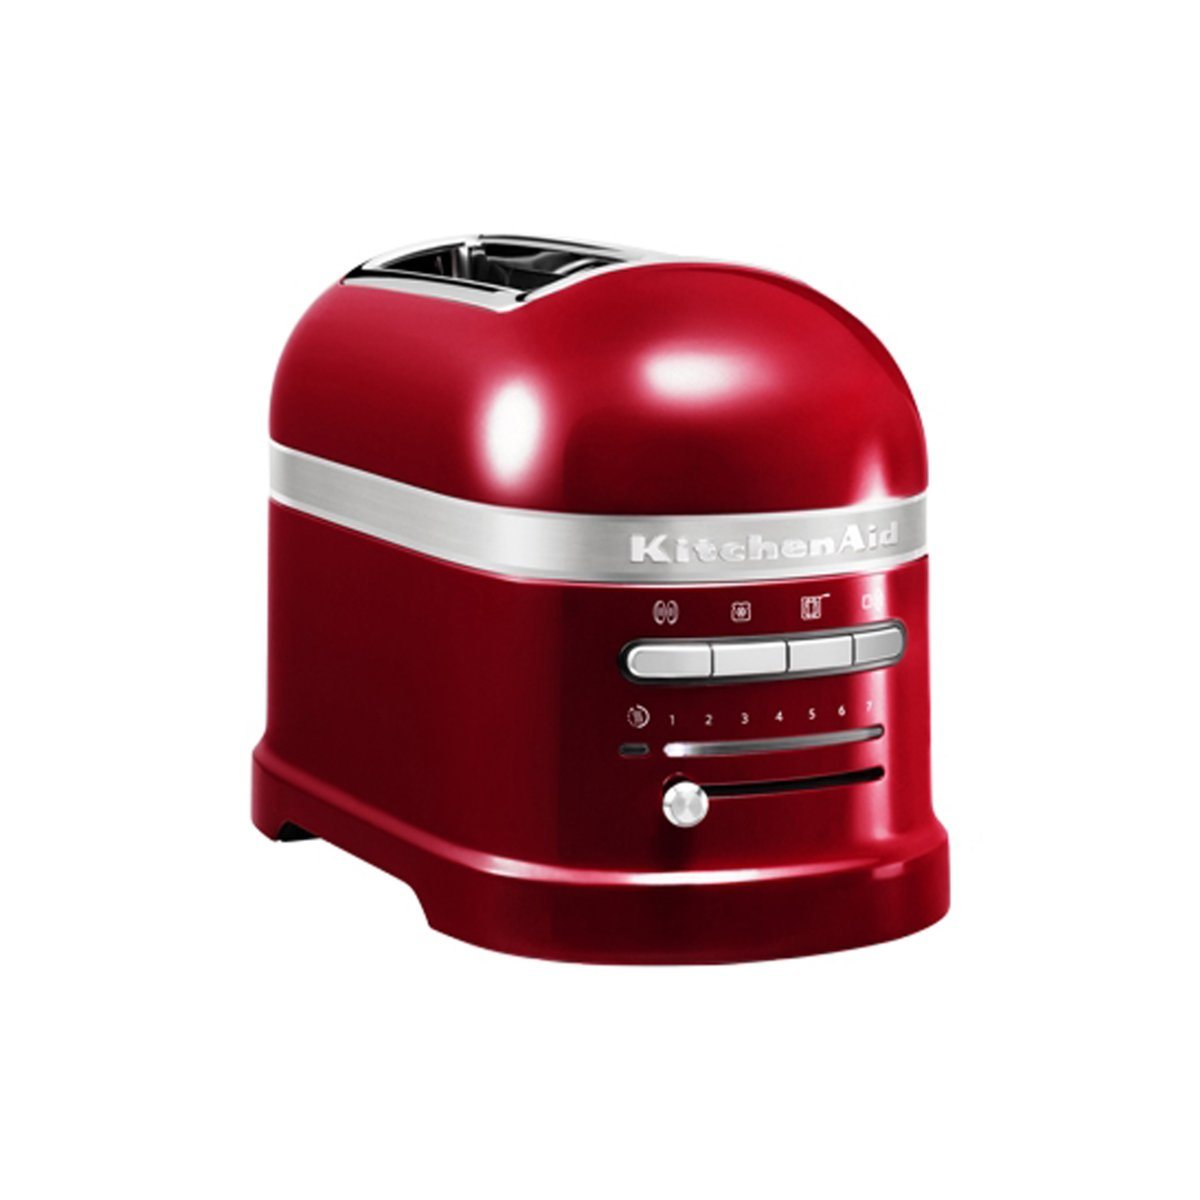 Grille pain ARTISAN 2 tranches rouge empire 5KMT2204 Kitchenaid